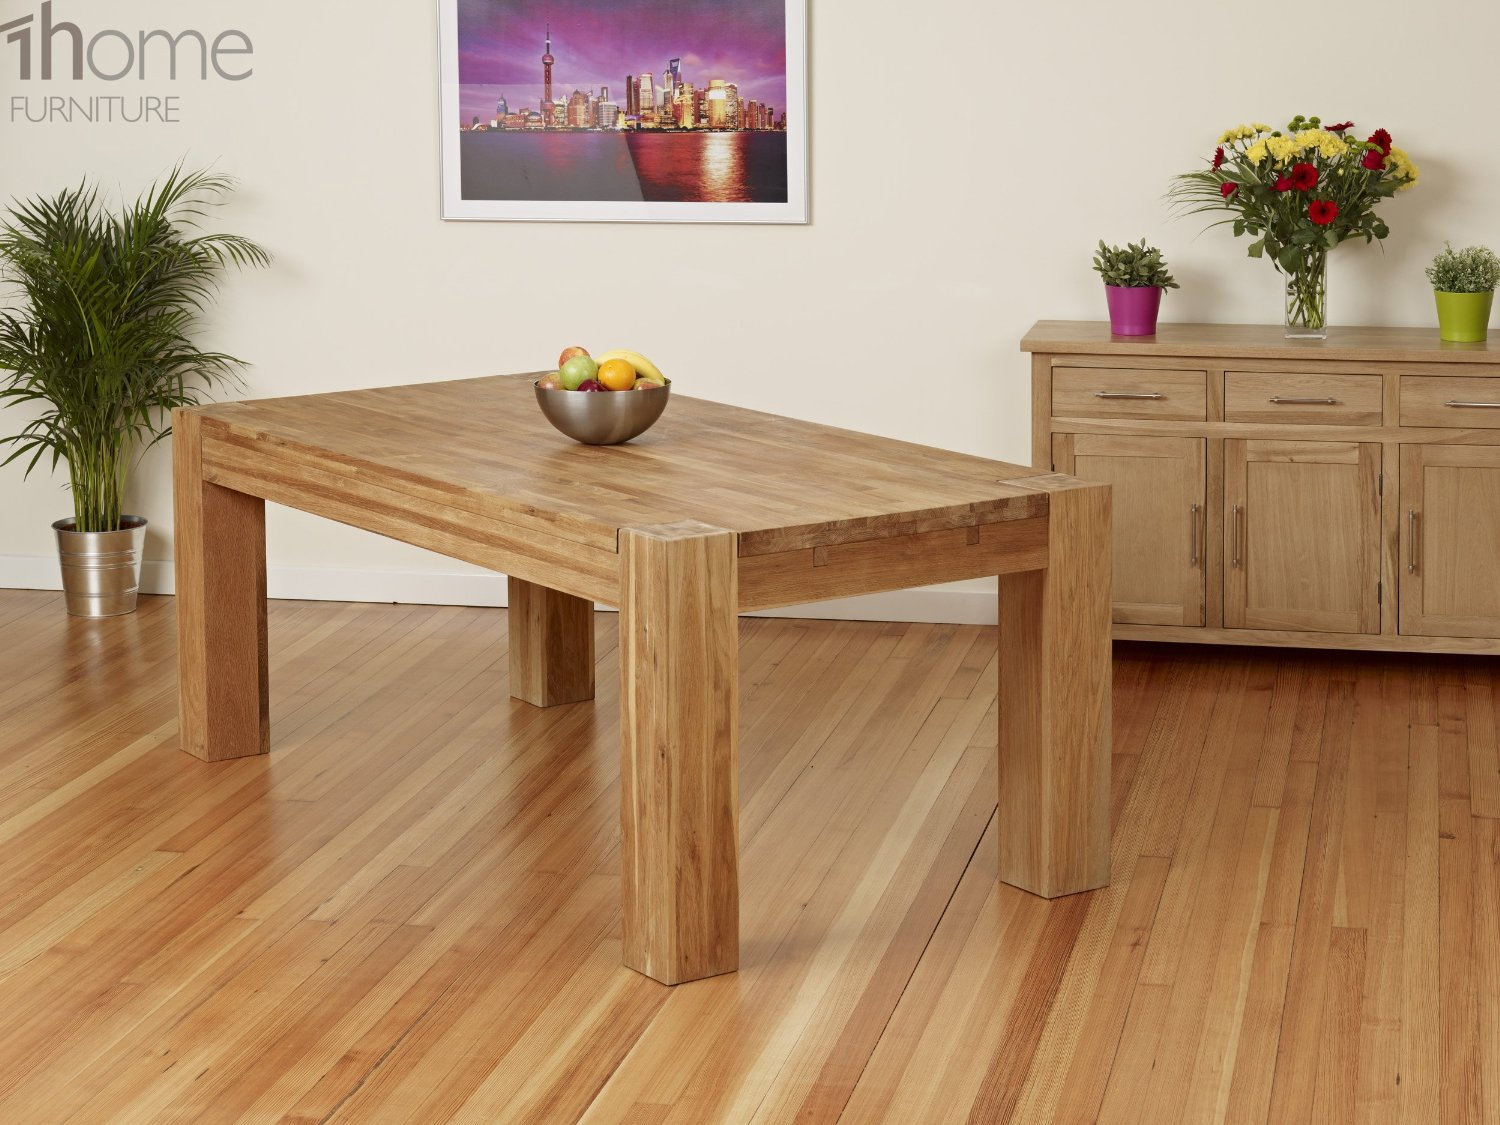 1home full solid oak dining table set with chunky legs room furniture 200cm table with 8 chairs amazoncouk kitchen u0026 home